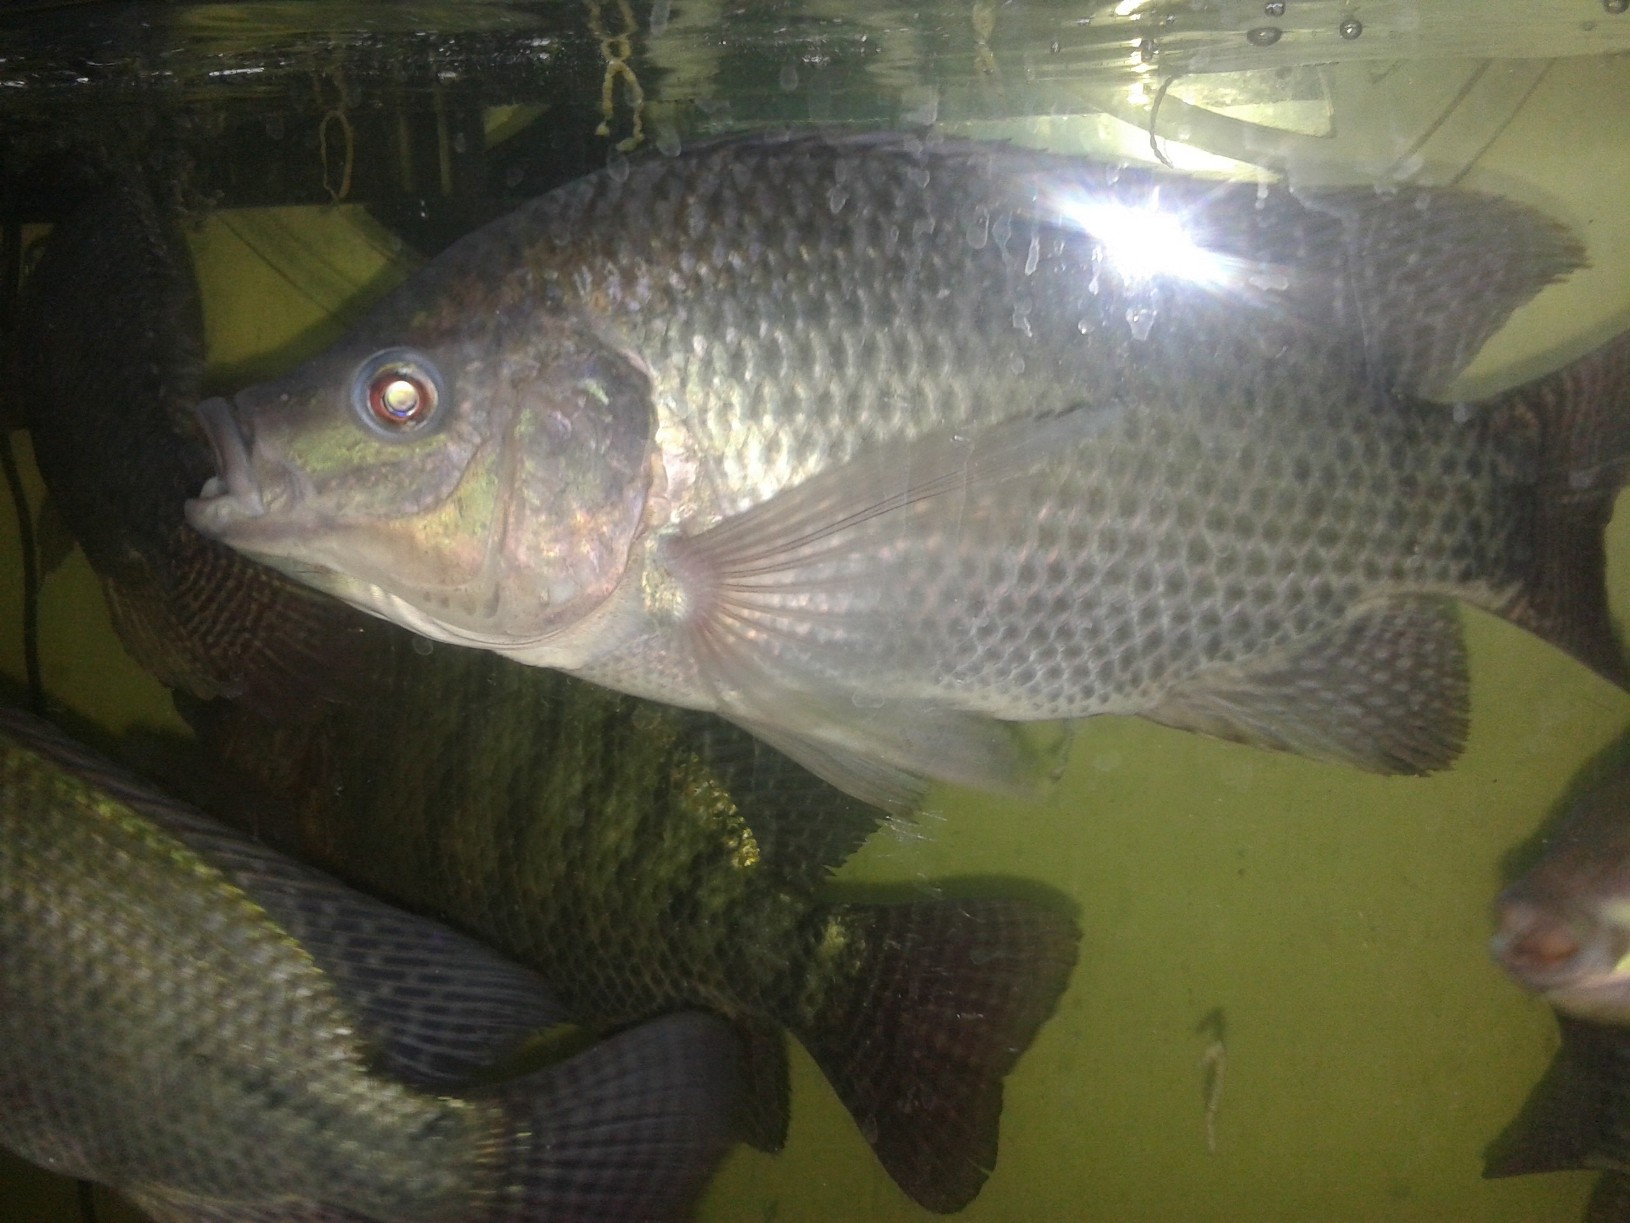 Best laid plans our venture into aquaponics save green for What is tilapia fish